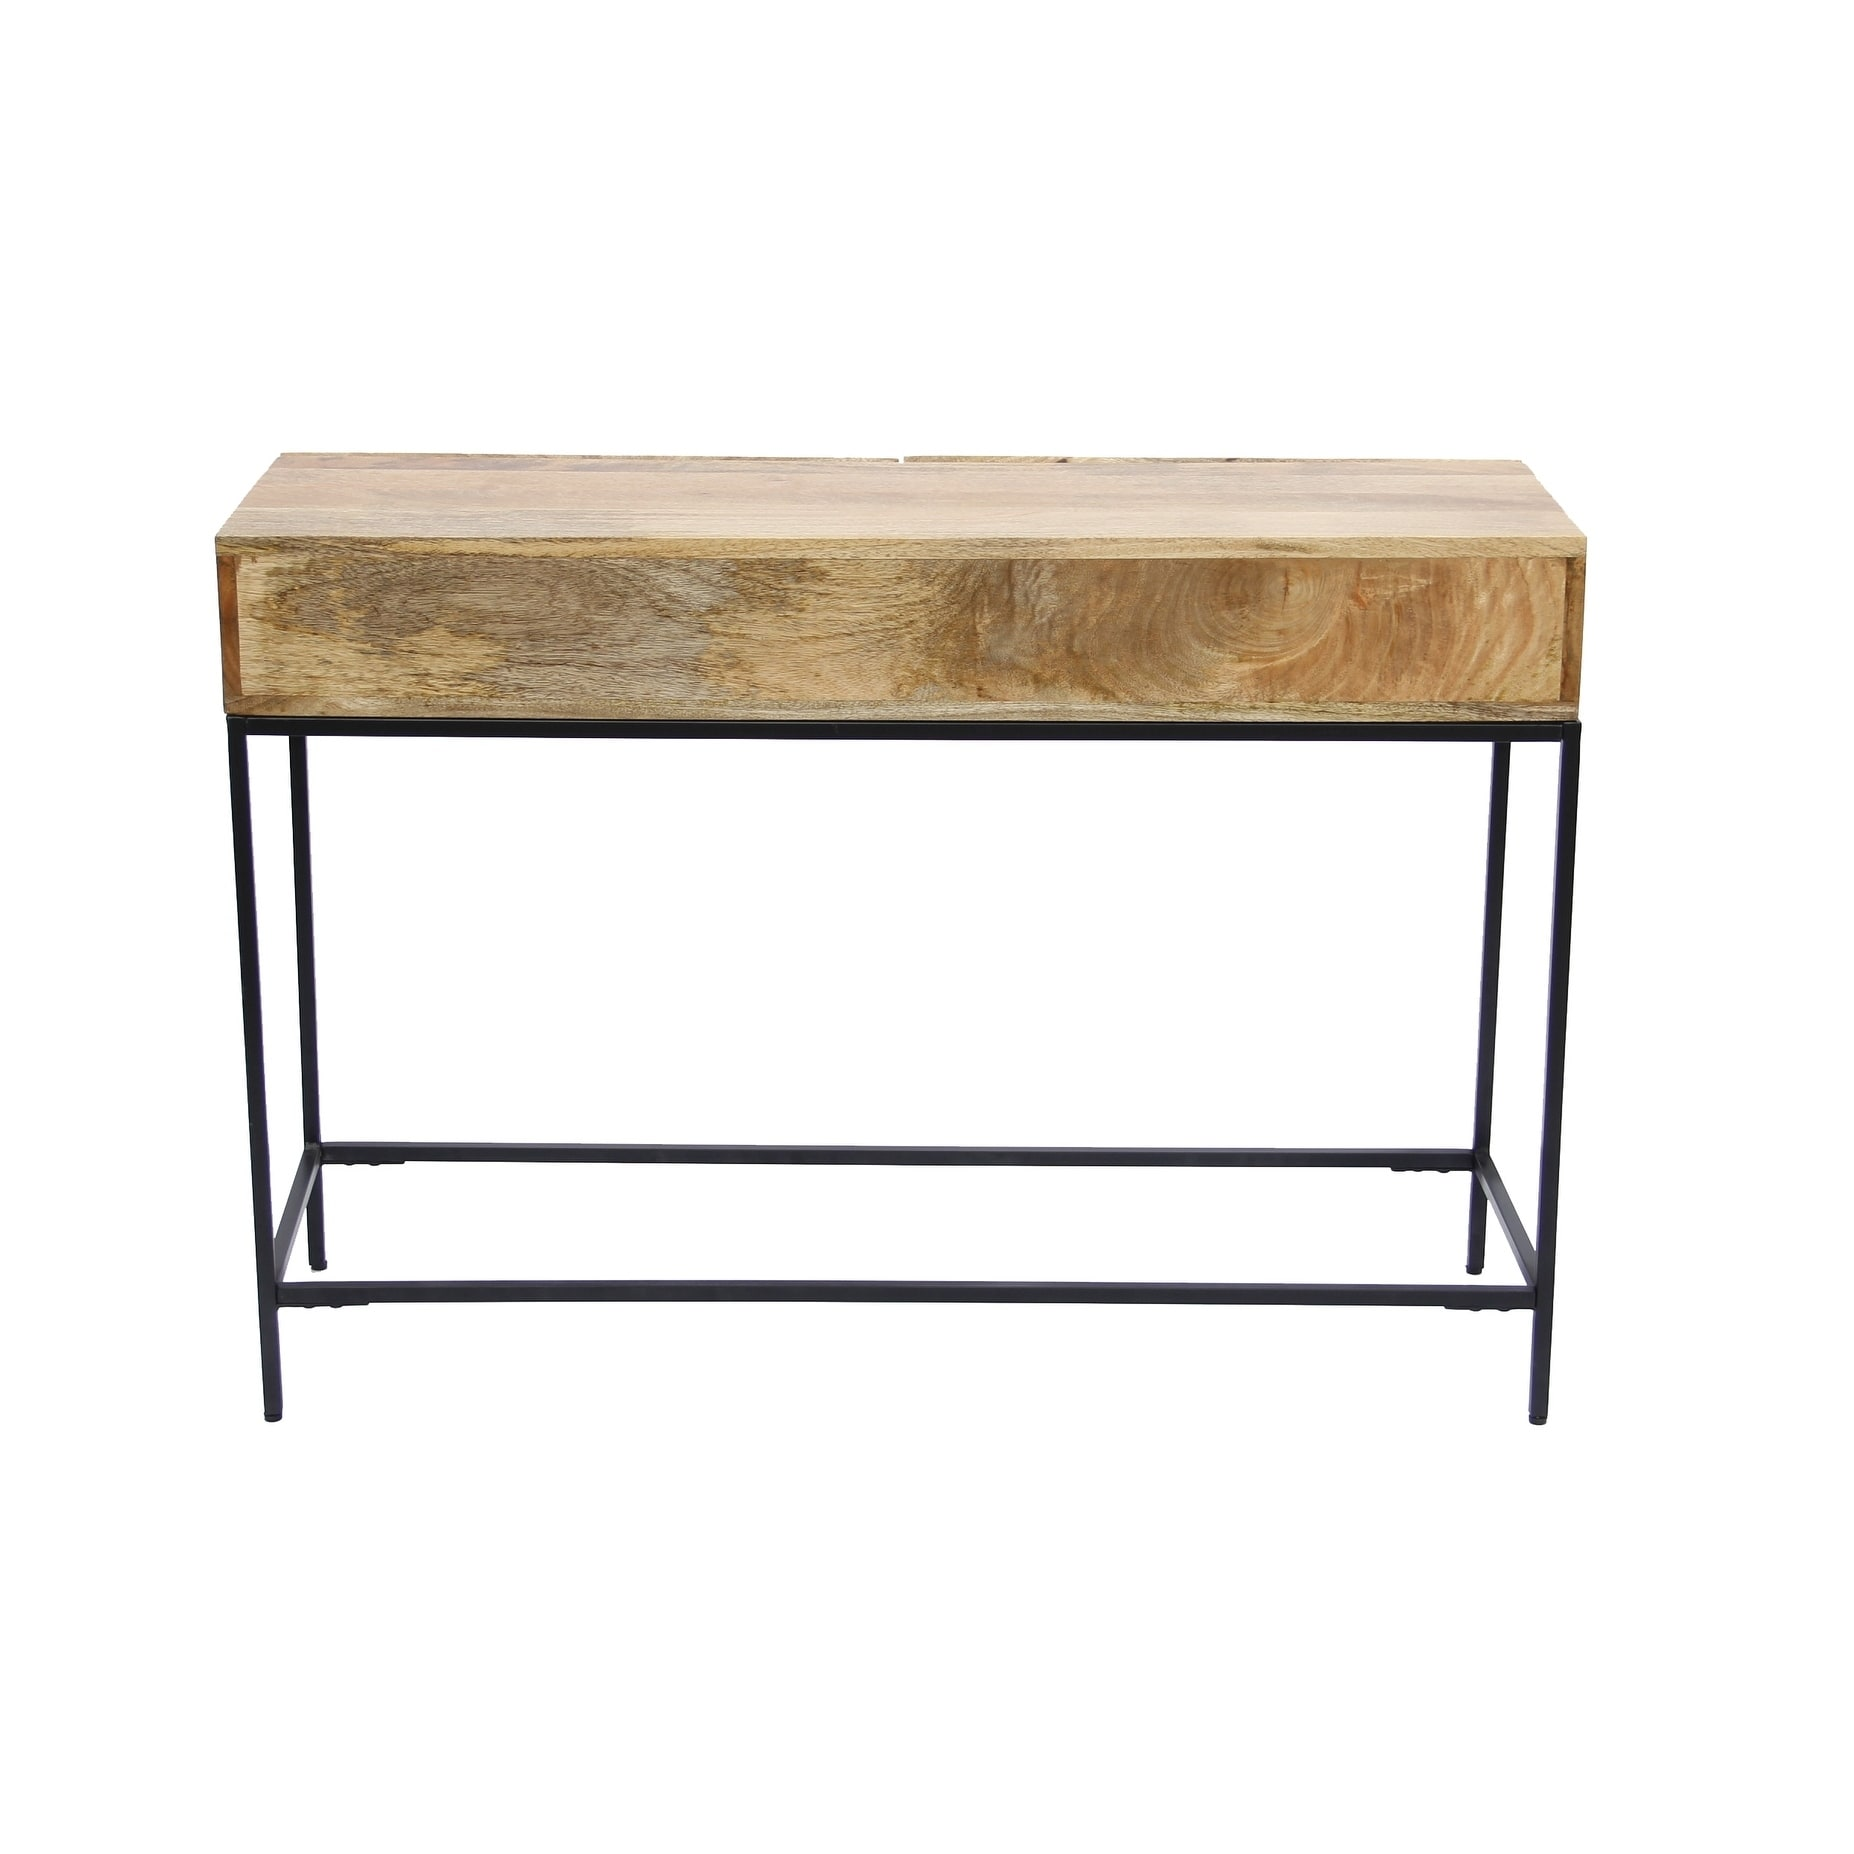 Shop Mango Wood And Metal Console Table With Two Drawers Brown